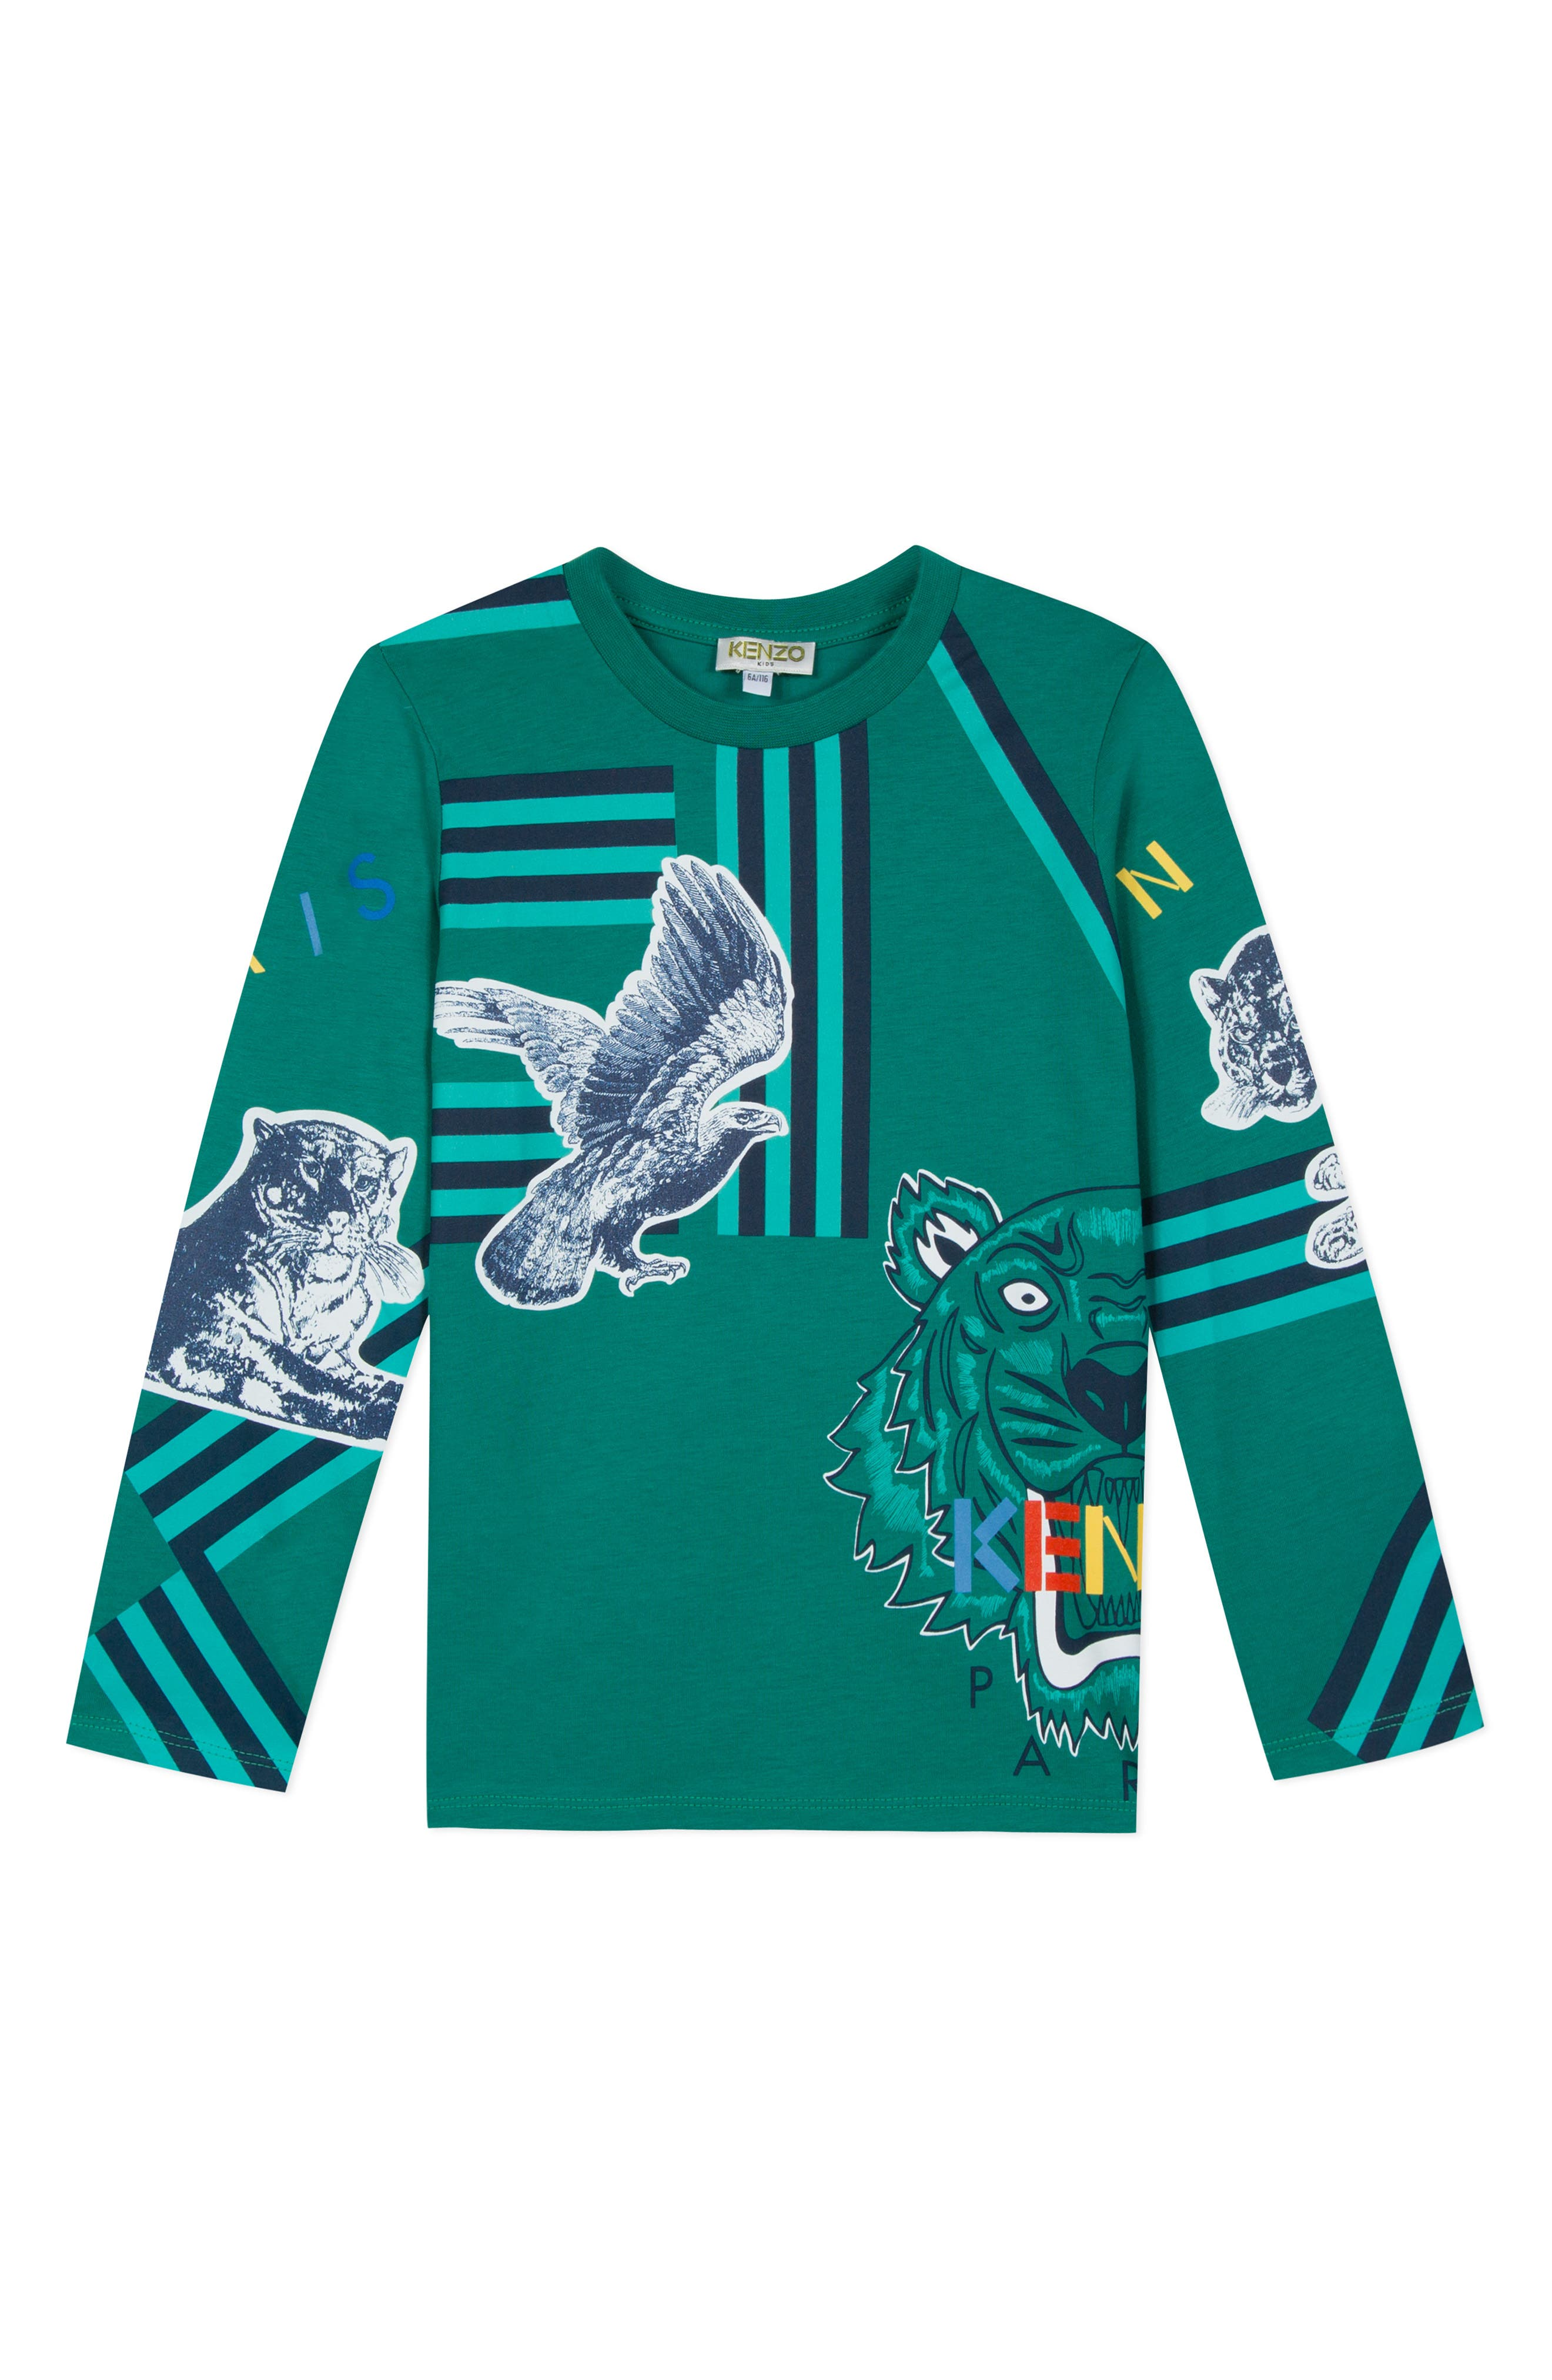 Boys Kenzo Iconic Bird TShirt Size 12Y  Green